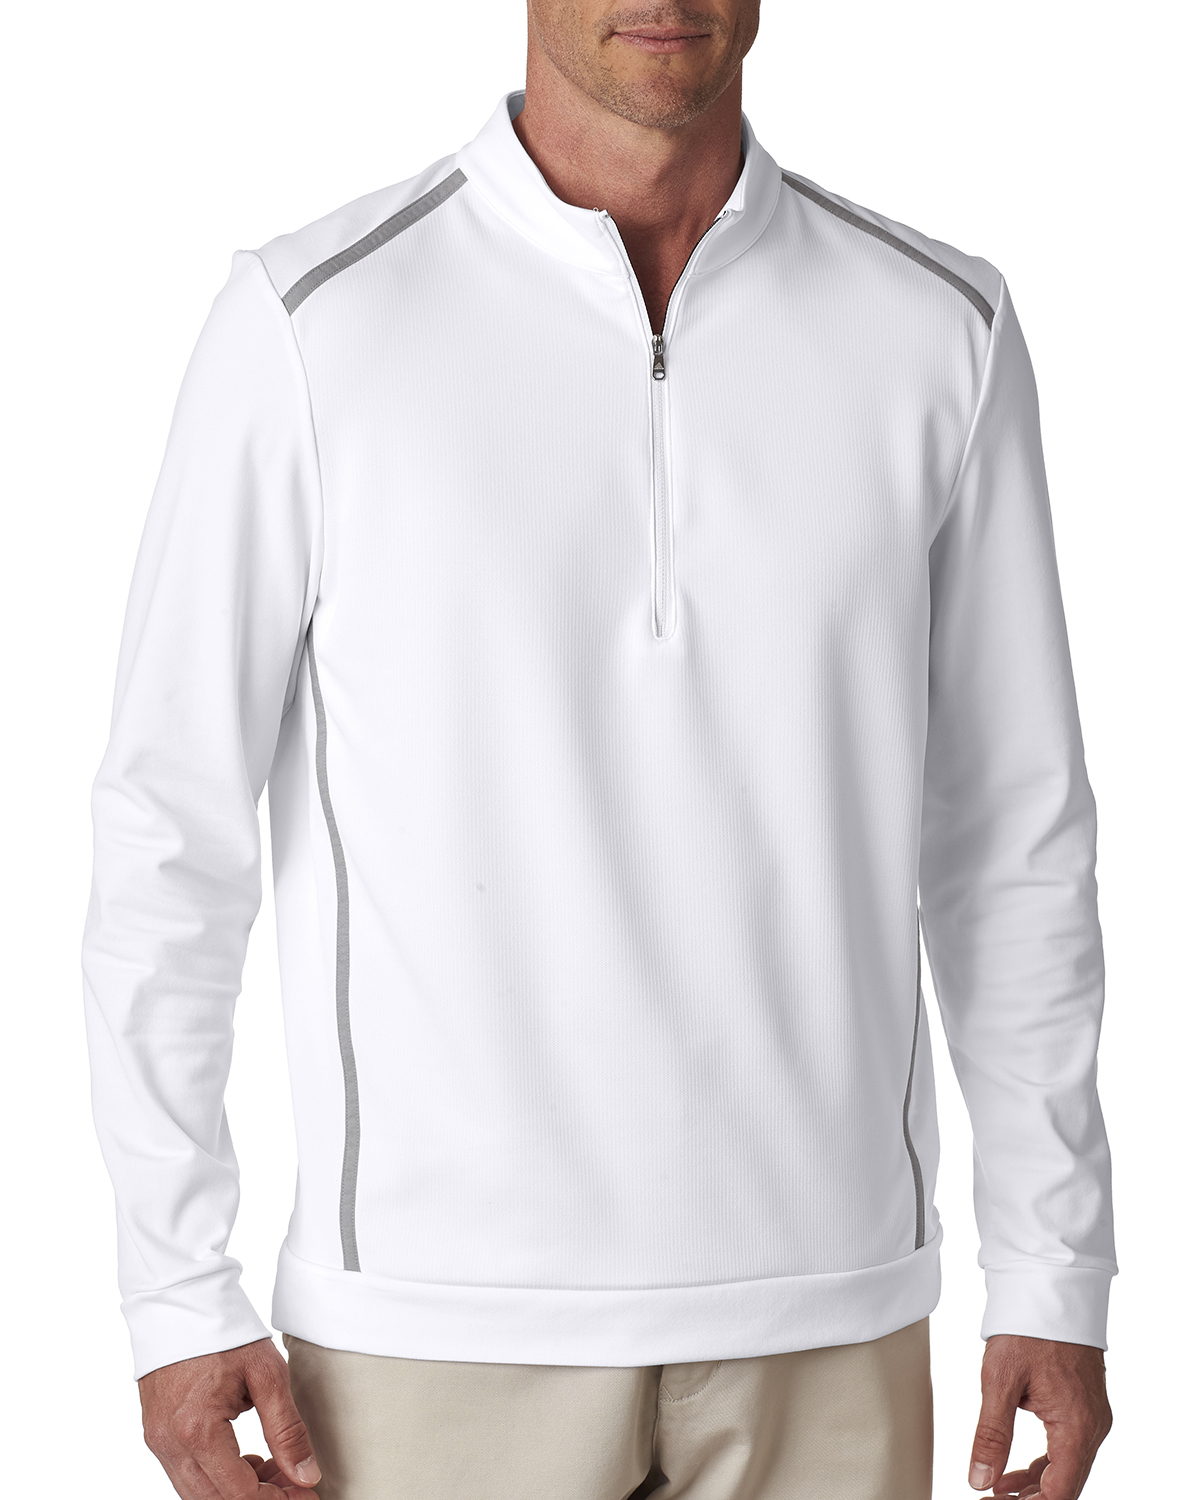 Adidas A277 - Men's Half-Zip Training Top